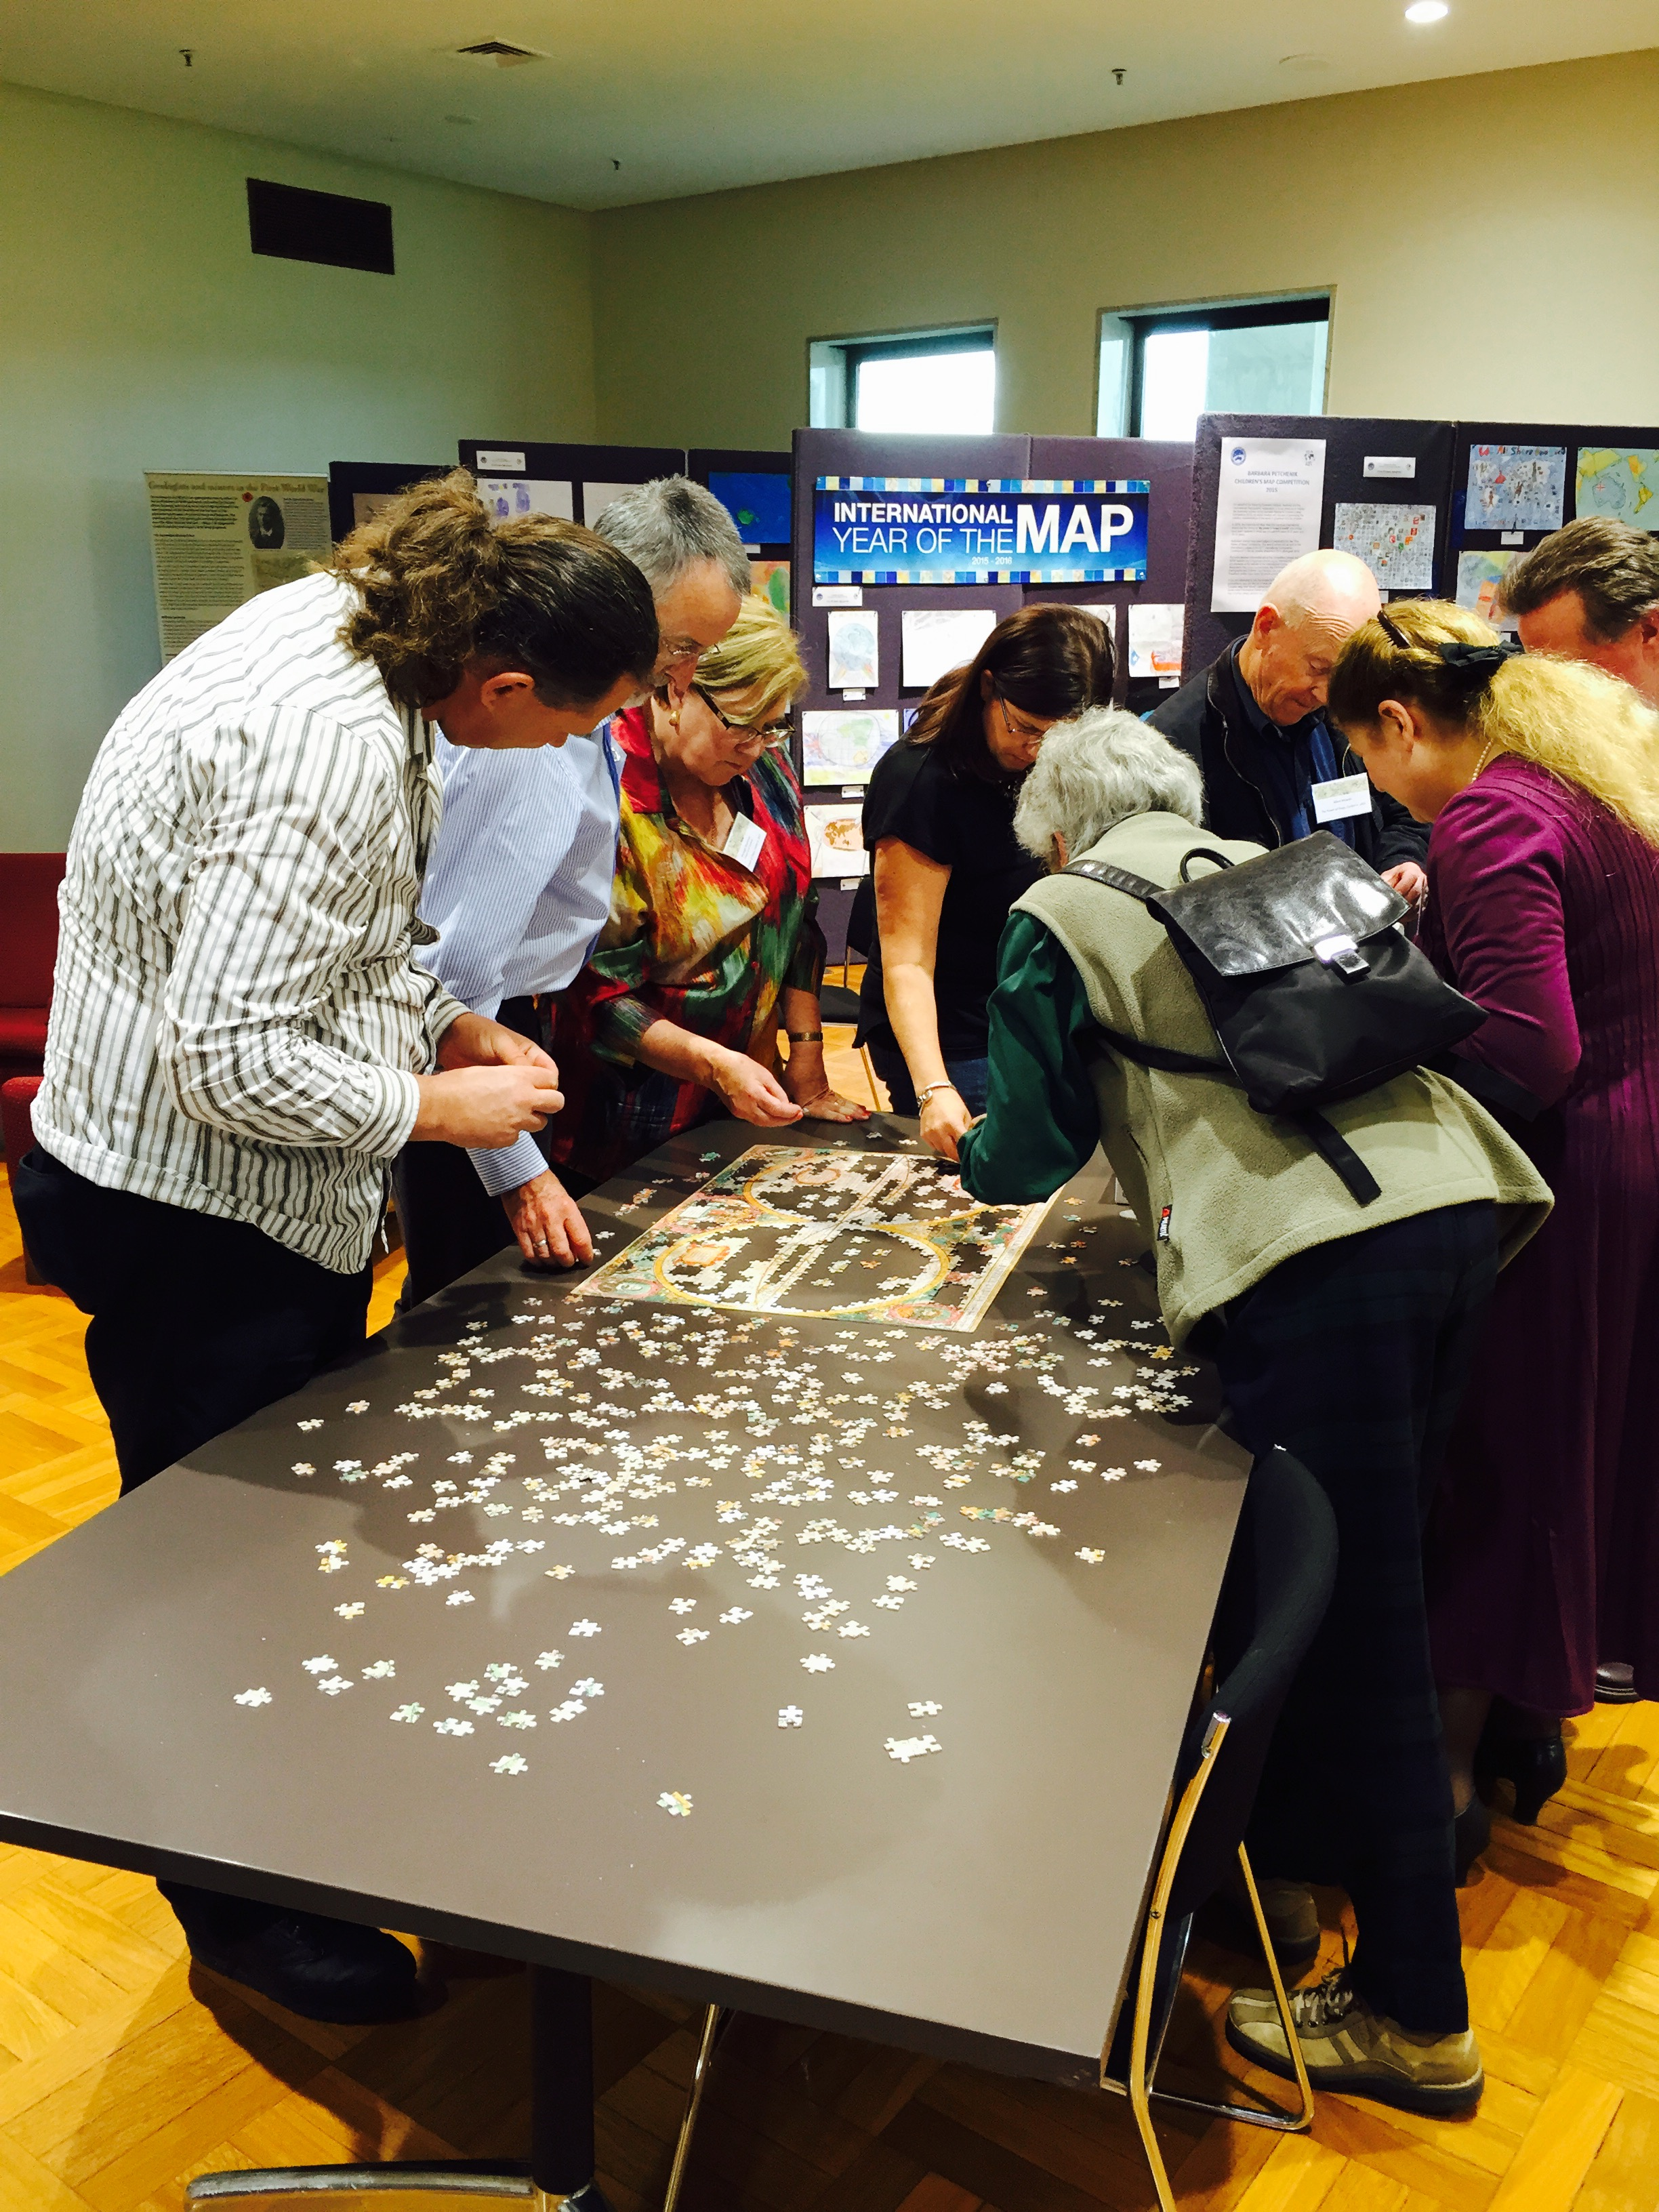 Attendees enjoying the challenge of a good jigsaw puzzle